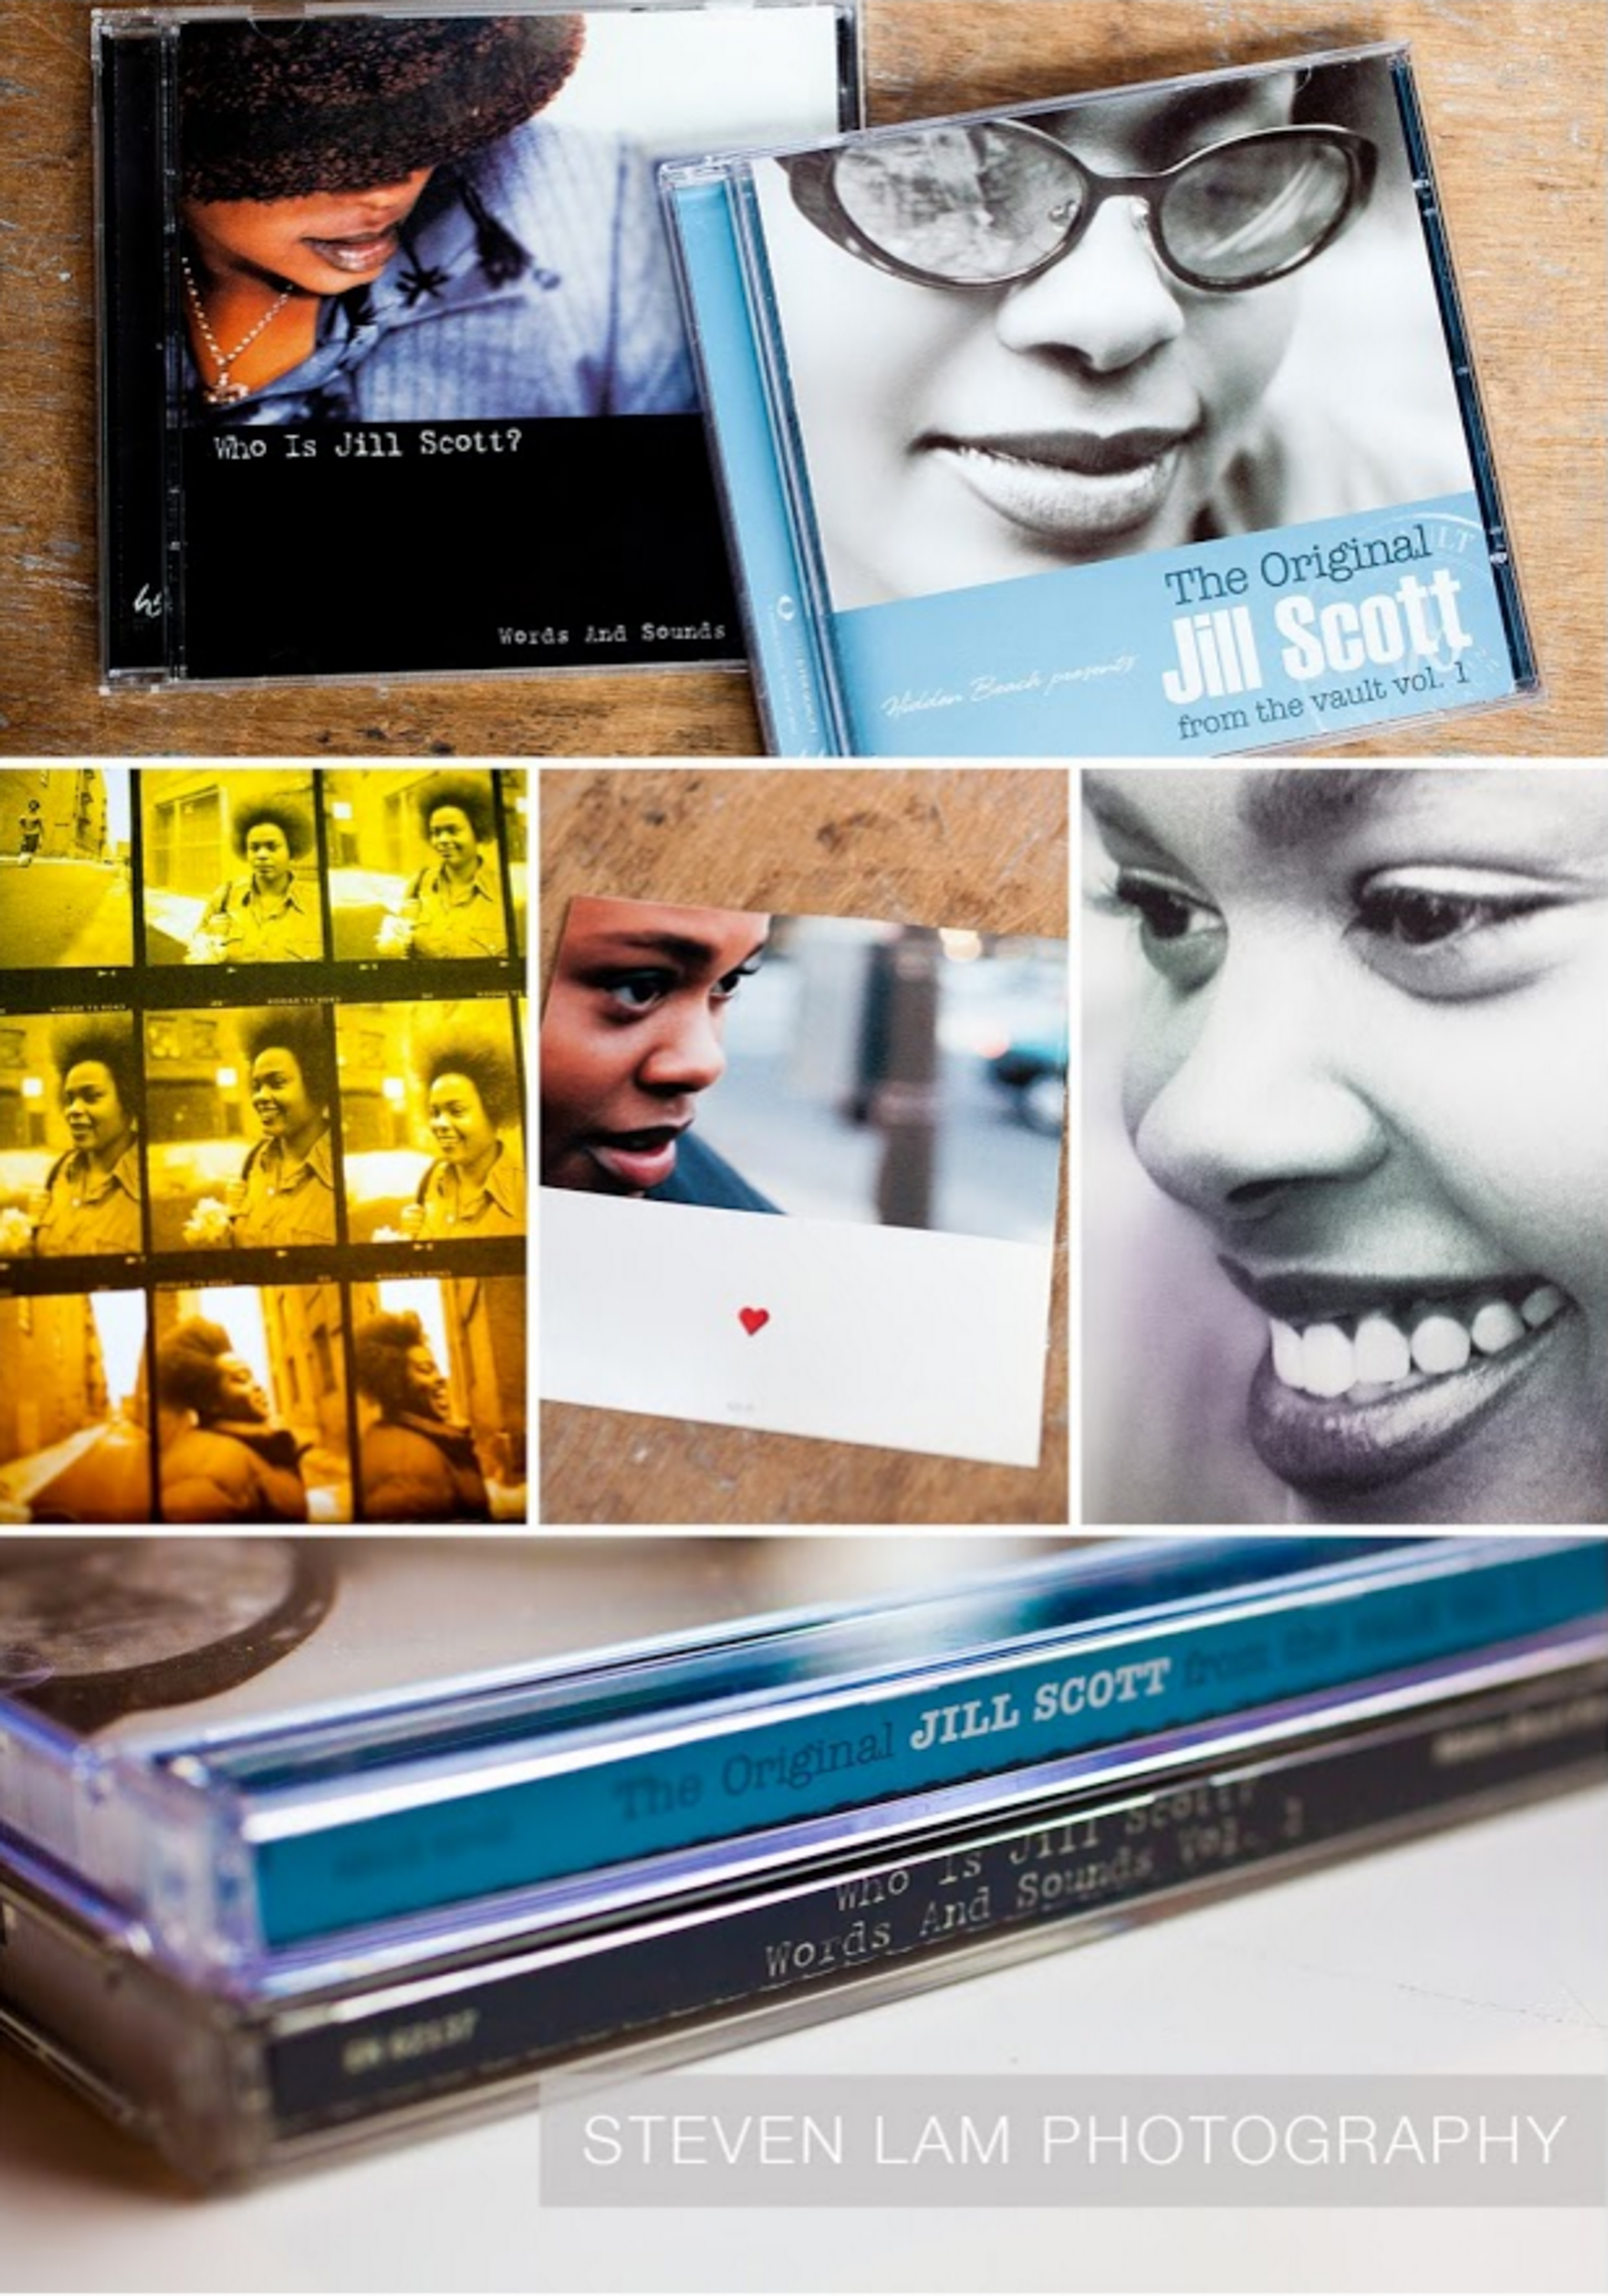 JILL SCOTT CD PACKAGING / Who Is Jill Scott? Words and Sounds, Vol. 1